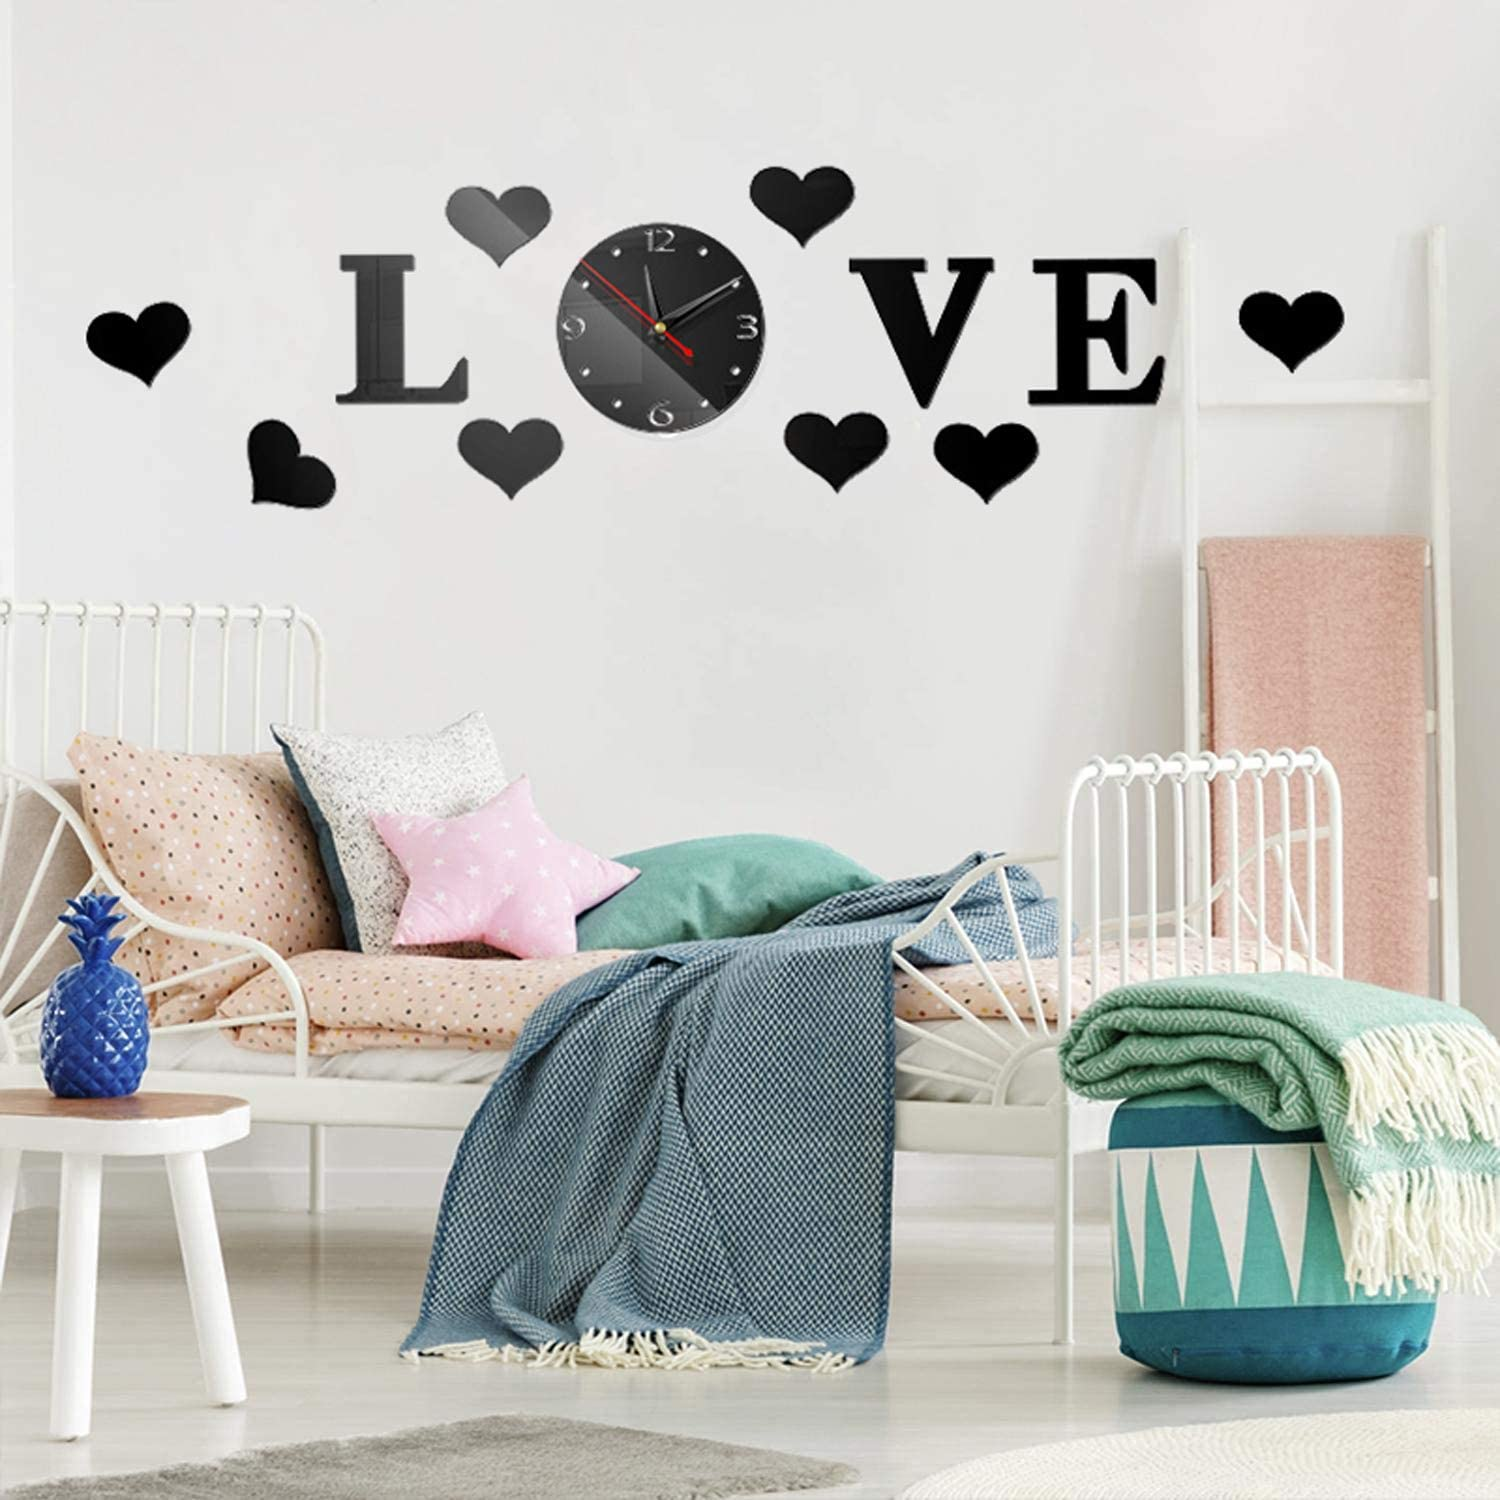 HOODDEAL DIY Mirrors Wall Decals Love Heart-Shaped Wall Stickers with Frameless Wall Clock Adhesive Art Wall Decoration Removable Home Nursery Living-Room Decor (Black)